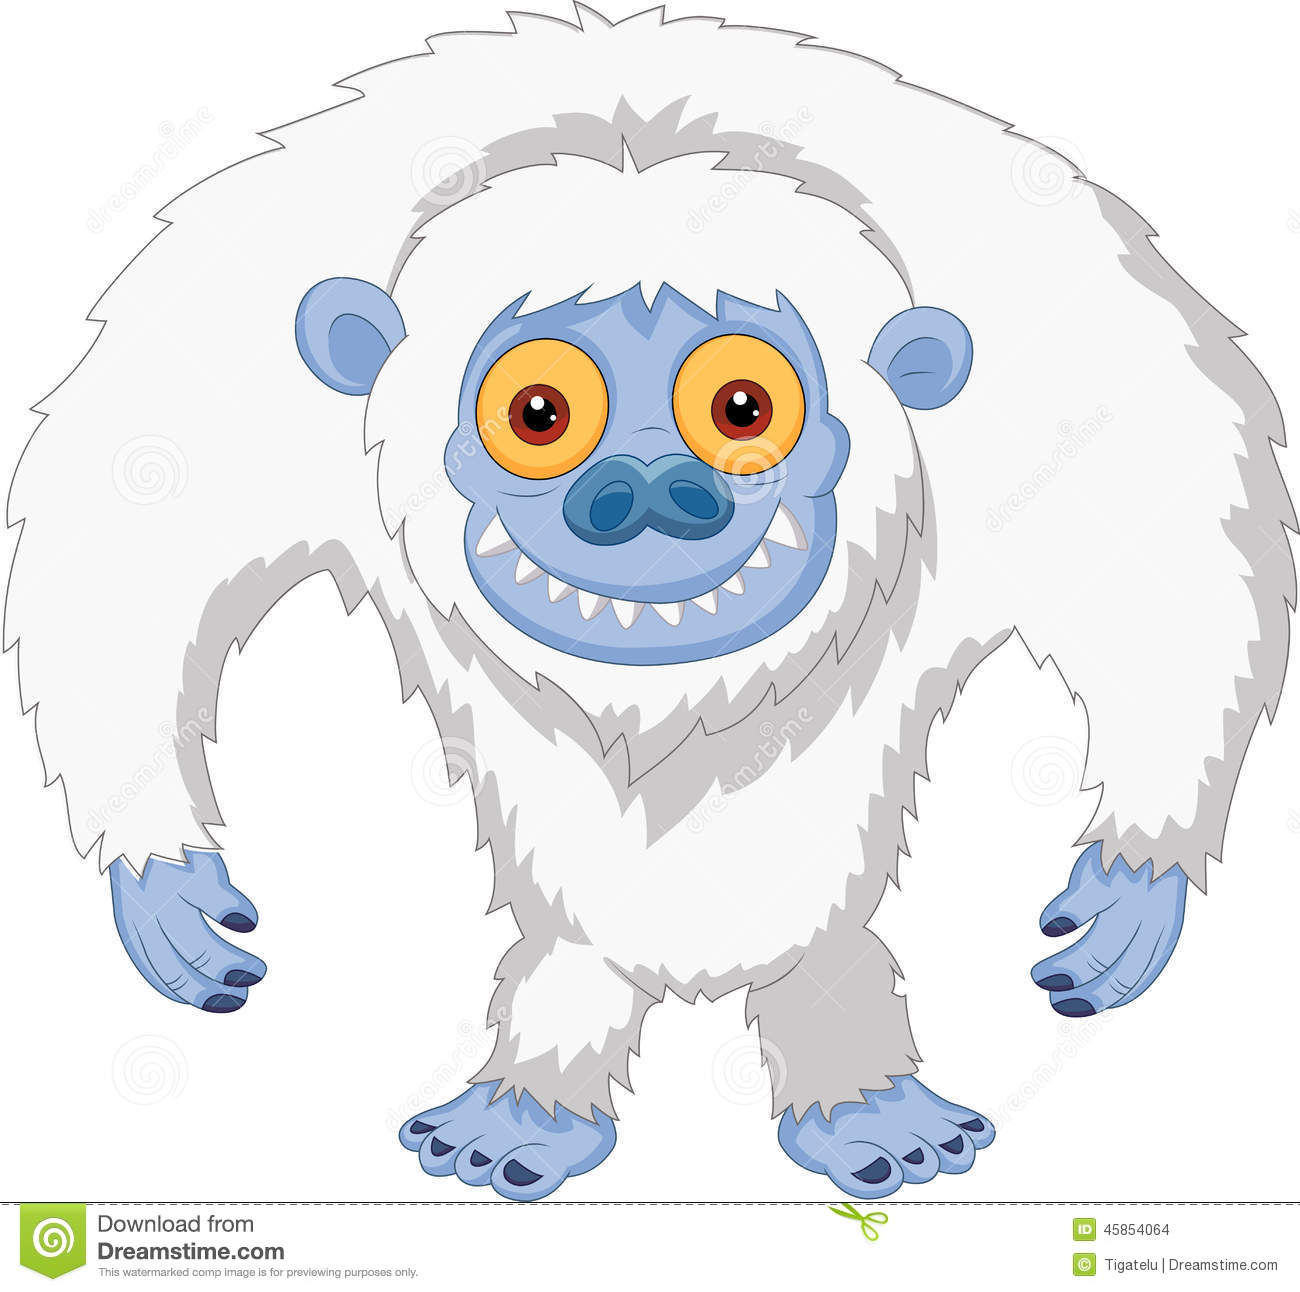 Yeti clipart #14, Download drawings